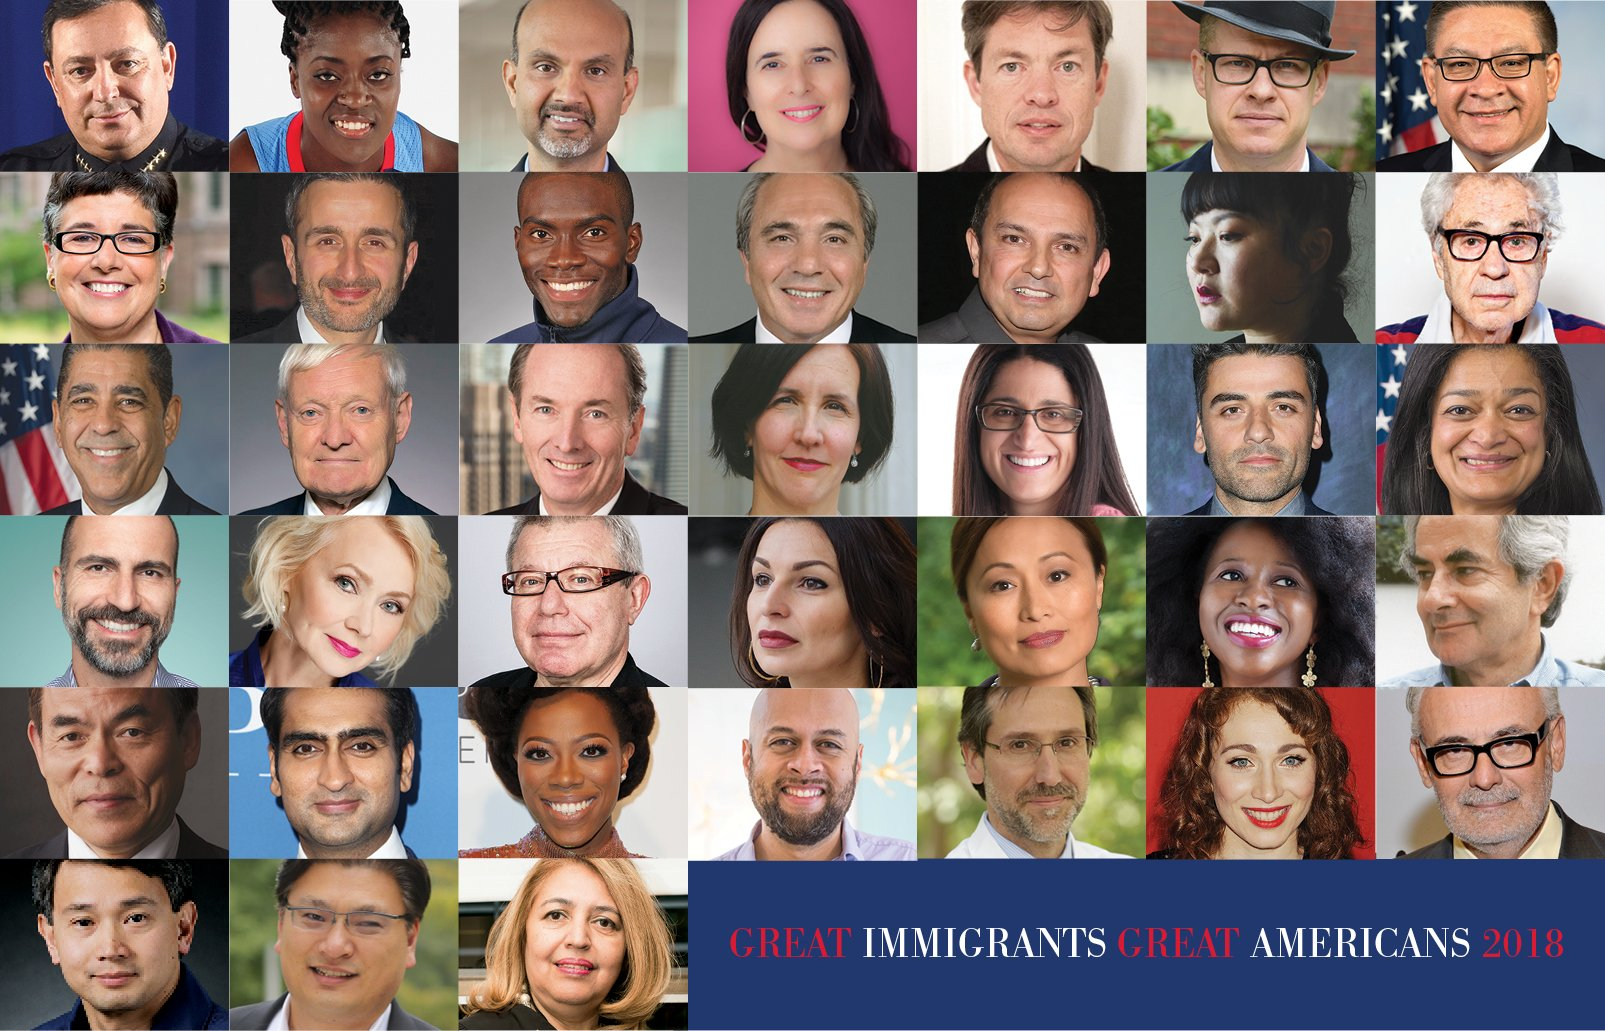 Great Immigrants Holder Image